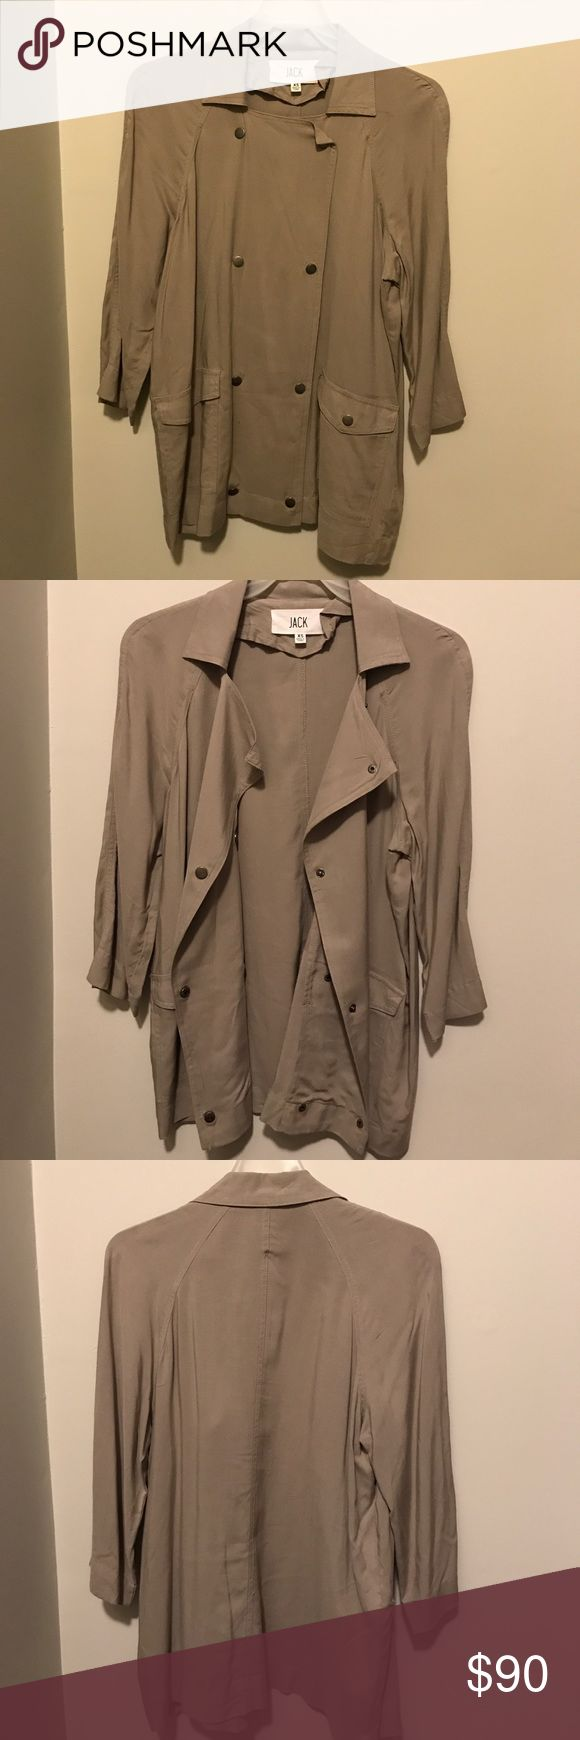 Outerwear Top. Size S. Jack Wills top. High quality, worn once. Jack Wills Jackets & Coats Blazers